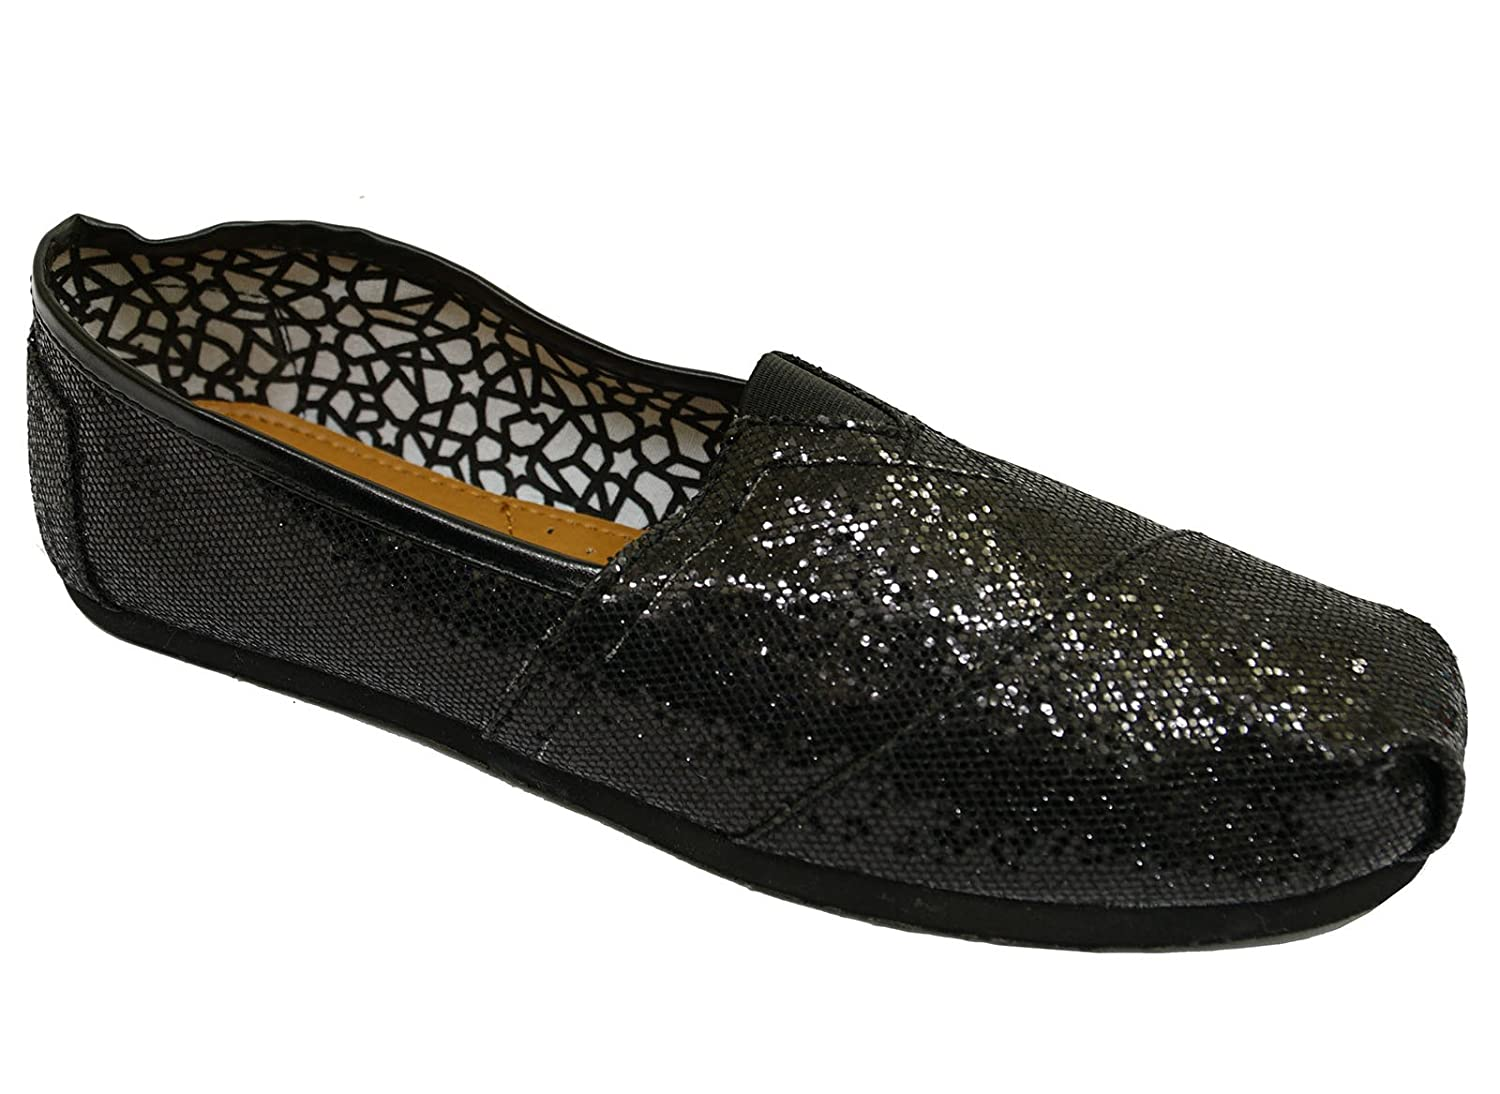 Ladies Flat Black Slip-On Glitter Holiday Comfy Espadrille Pumps Shoes  Sizes 3-8: Amazon.co.uk: Shoes & Bags